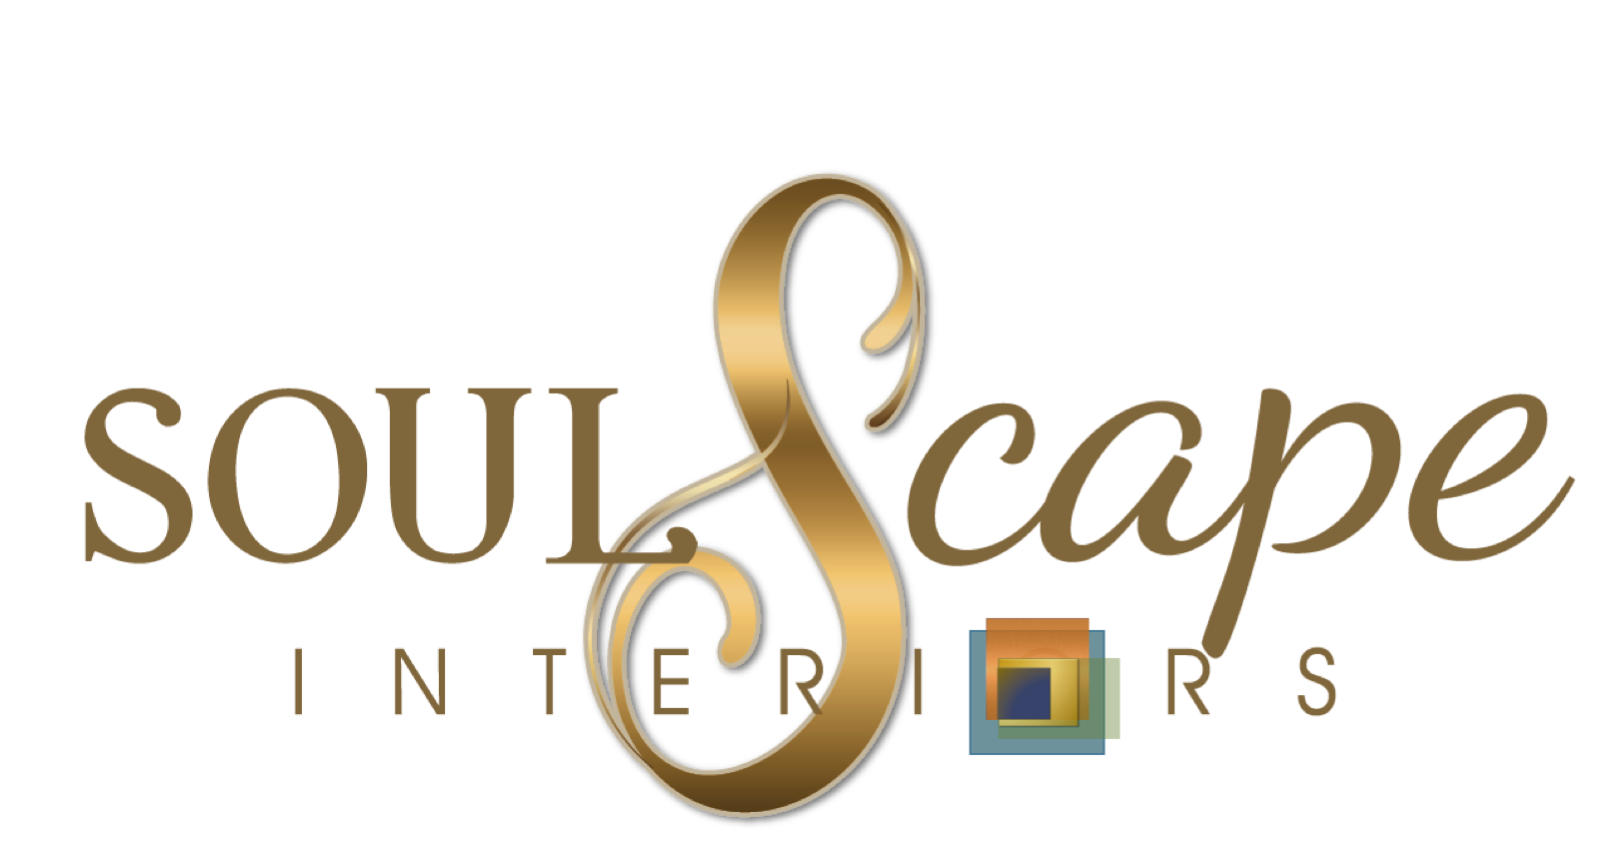 SoulScape Interiors Inc